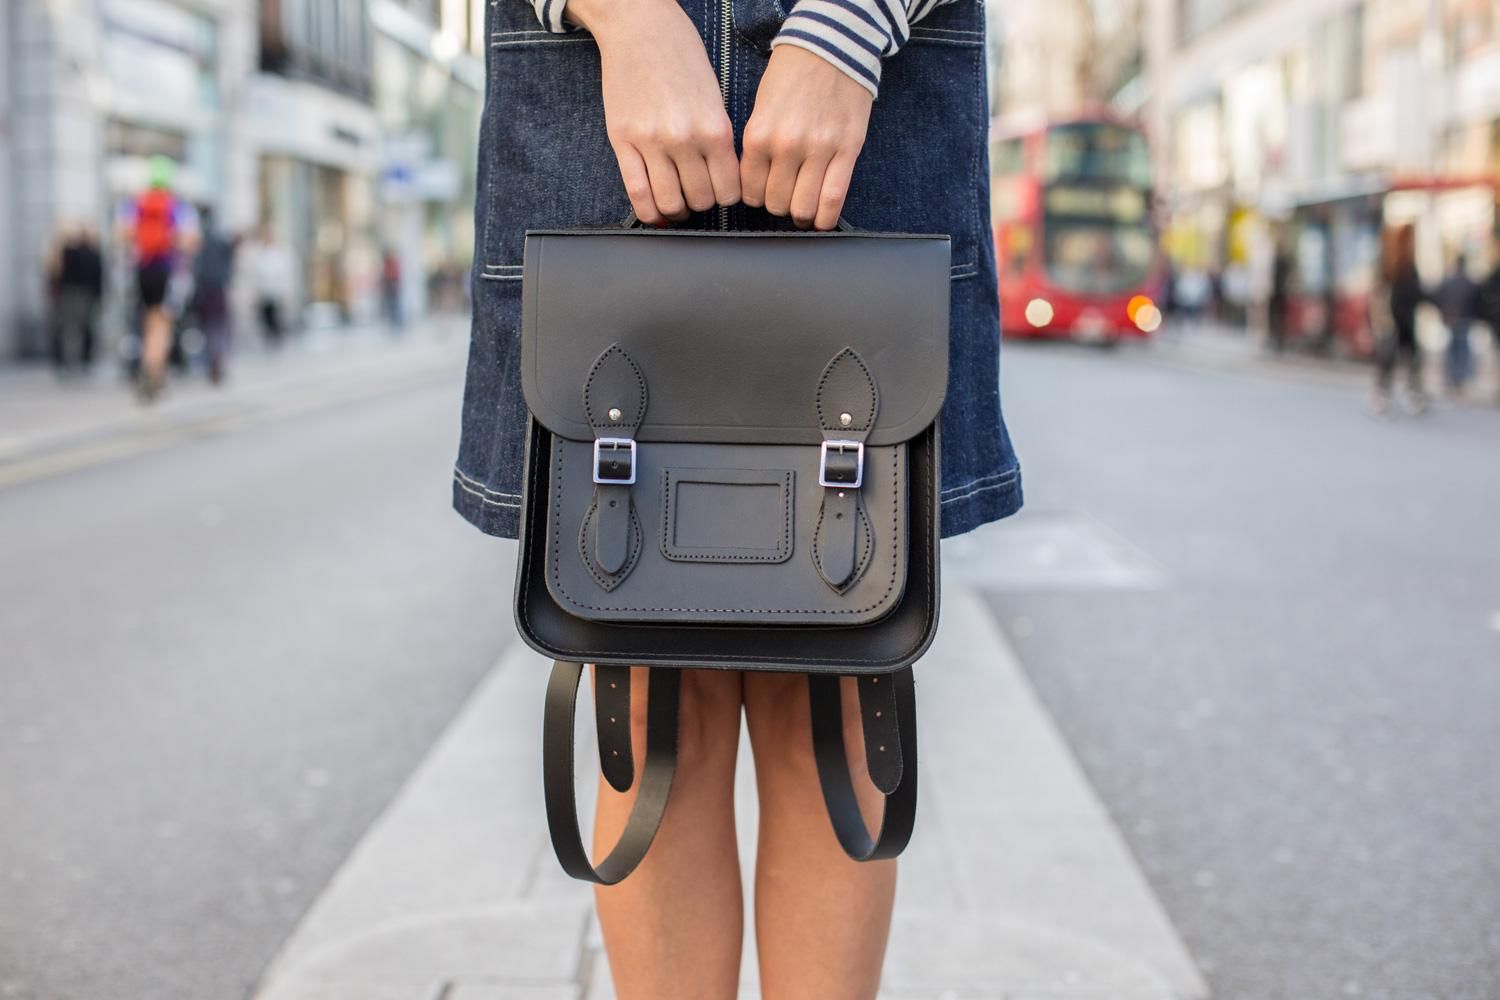 Cambridge Satchel - My Weekend Wardrobe